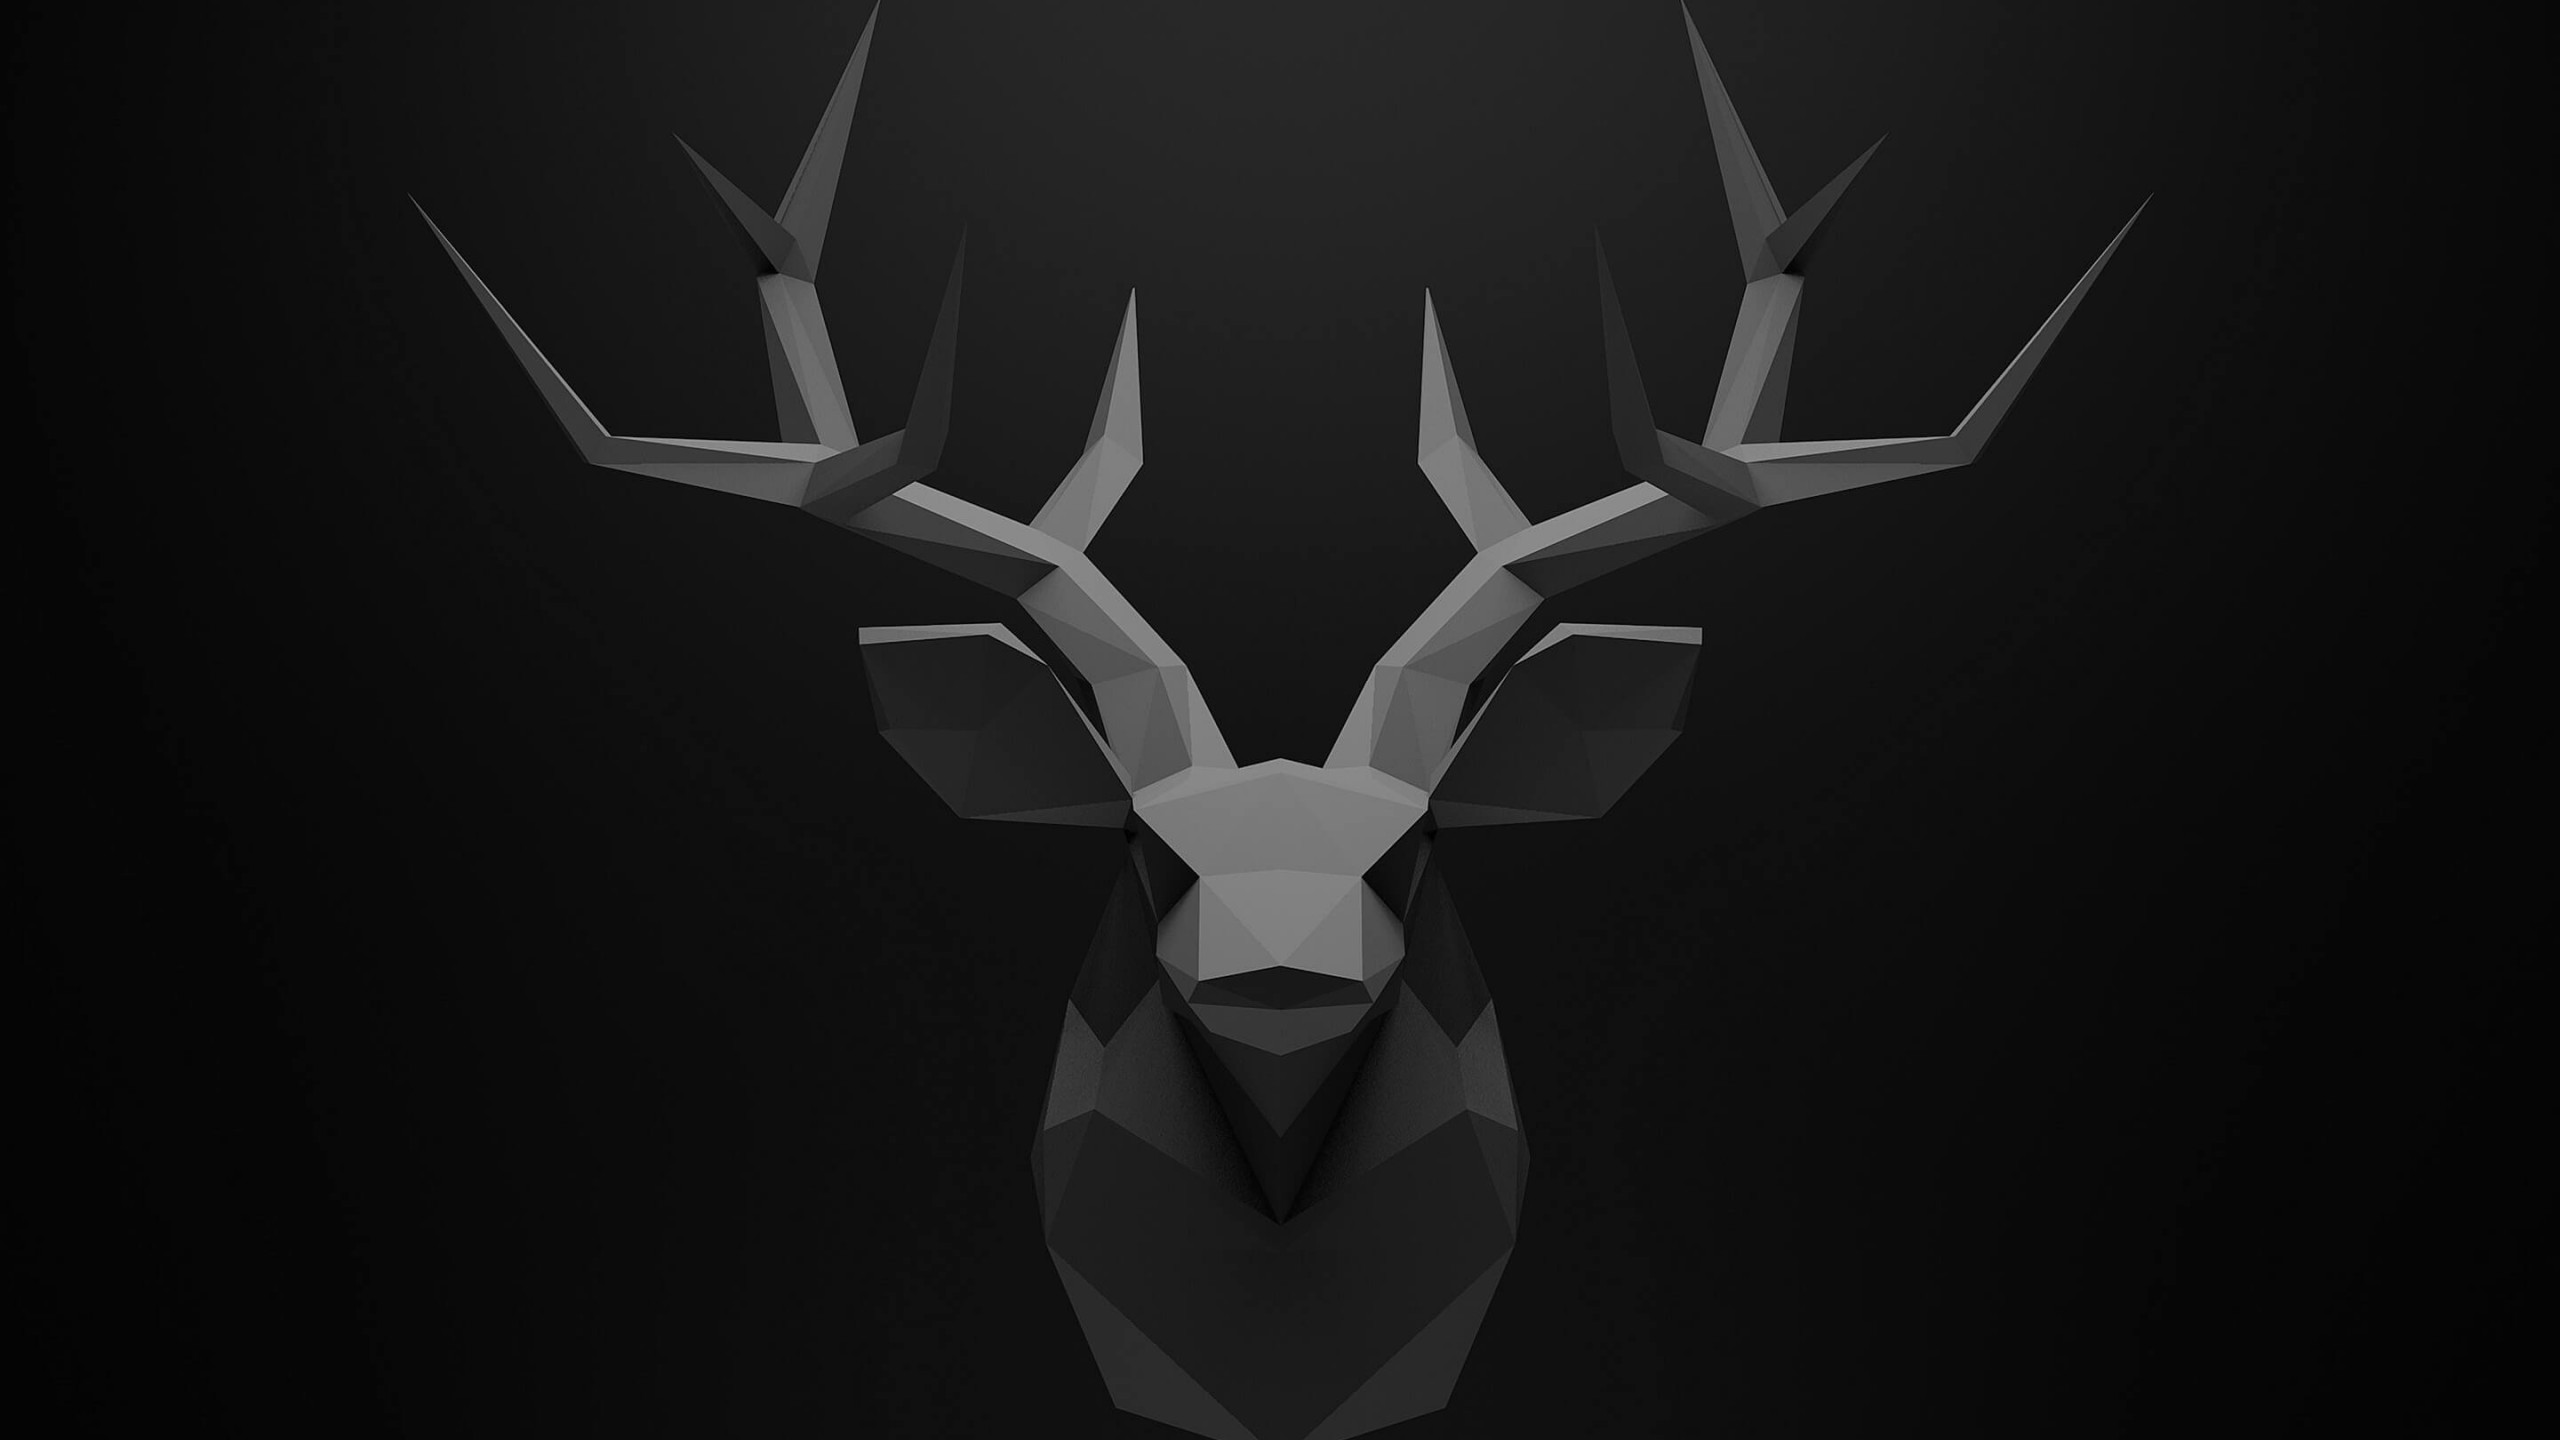 Low Poly Deer Head Wallpaper for Social Media YouTube Channel Art